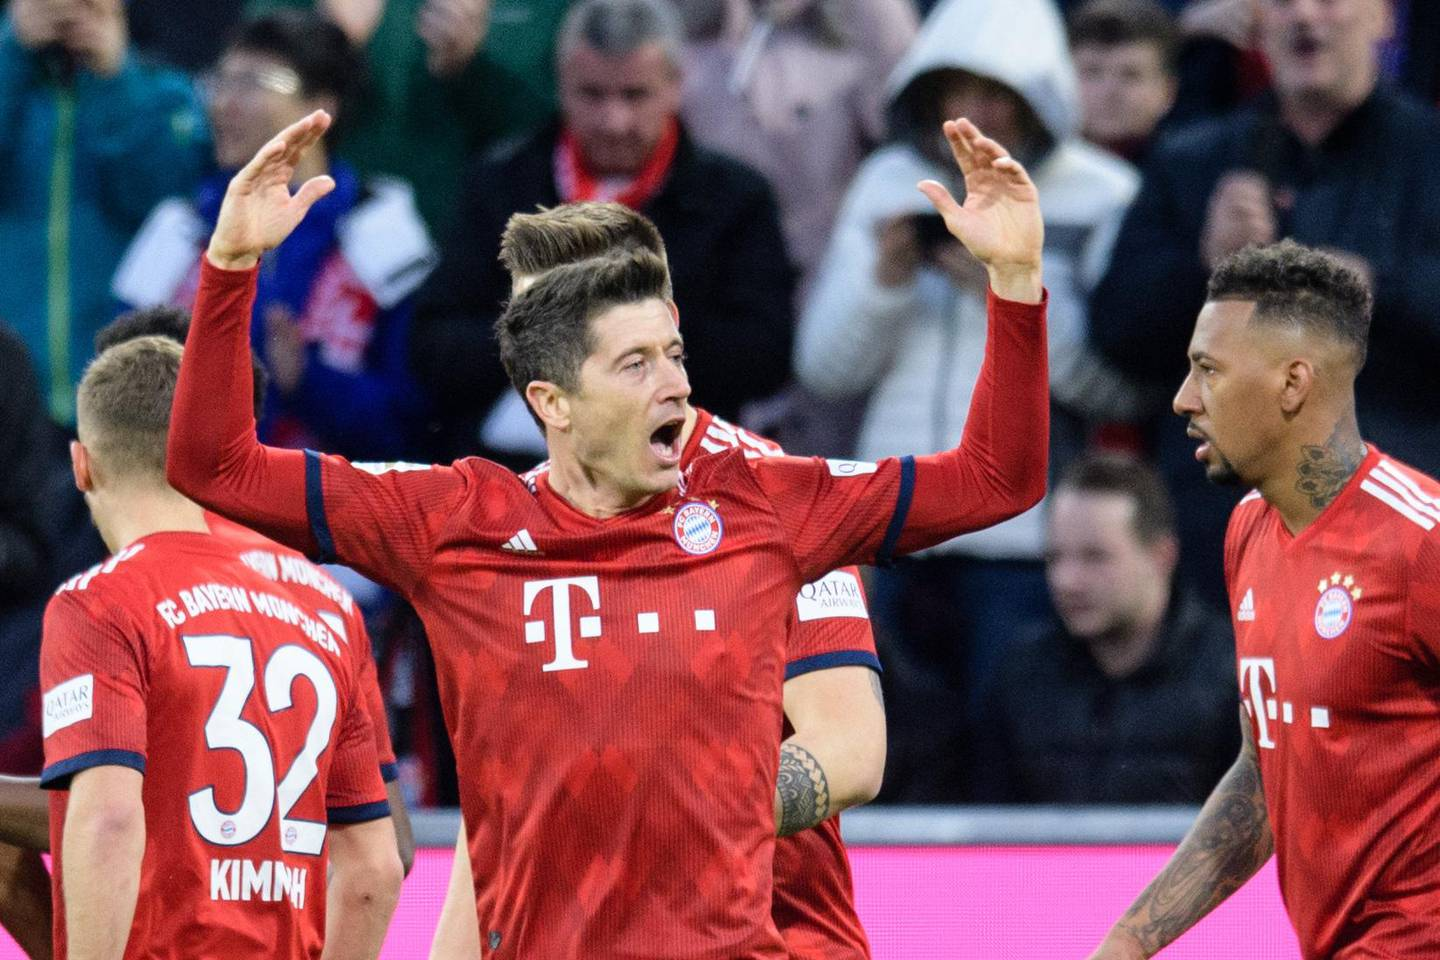 Bayern Munich's Polish striker Robert Lewandowski  celebrates after scoring during the German first division Bundesliga football match FC Bayern Munich v FSV Mainz 05 in Munich, southern Germany on March 17, 2019. Germany OUT / DFL REGULATIONS PROHIBIT ANY USE OF PHOTOGRAPHS AS IMAGE SEQUENCES AND/OR QUASI-VIDEO  / AFP / dpa / Matthias Balk / DFL REGULATIONS PROHIBIT ANY USE OF PHOTOGRAPHS AS IMAGE SEQUENCES AND/OR QUASI-VIDEO